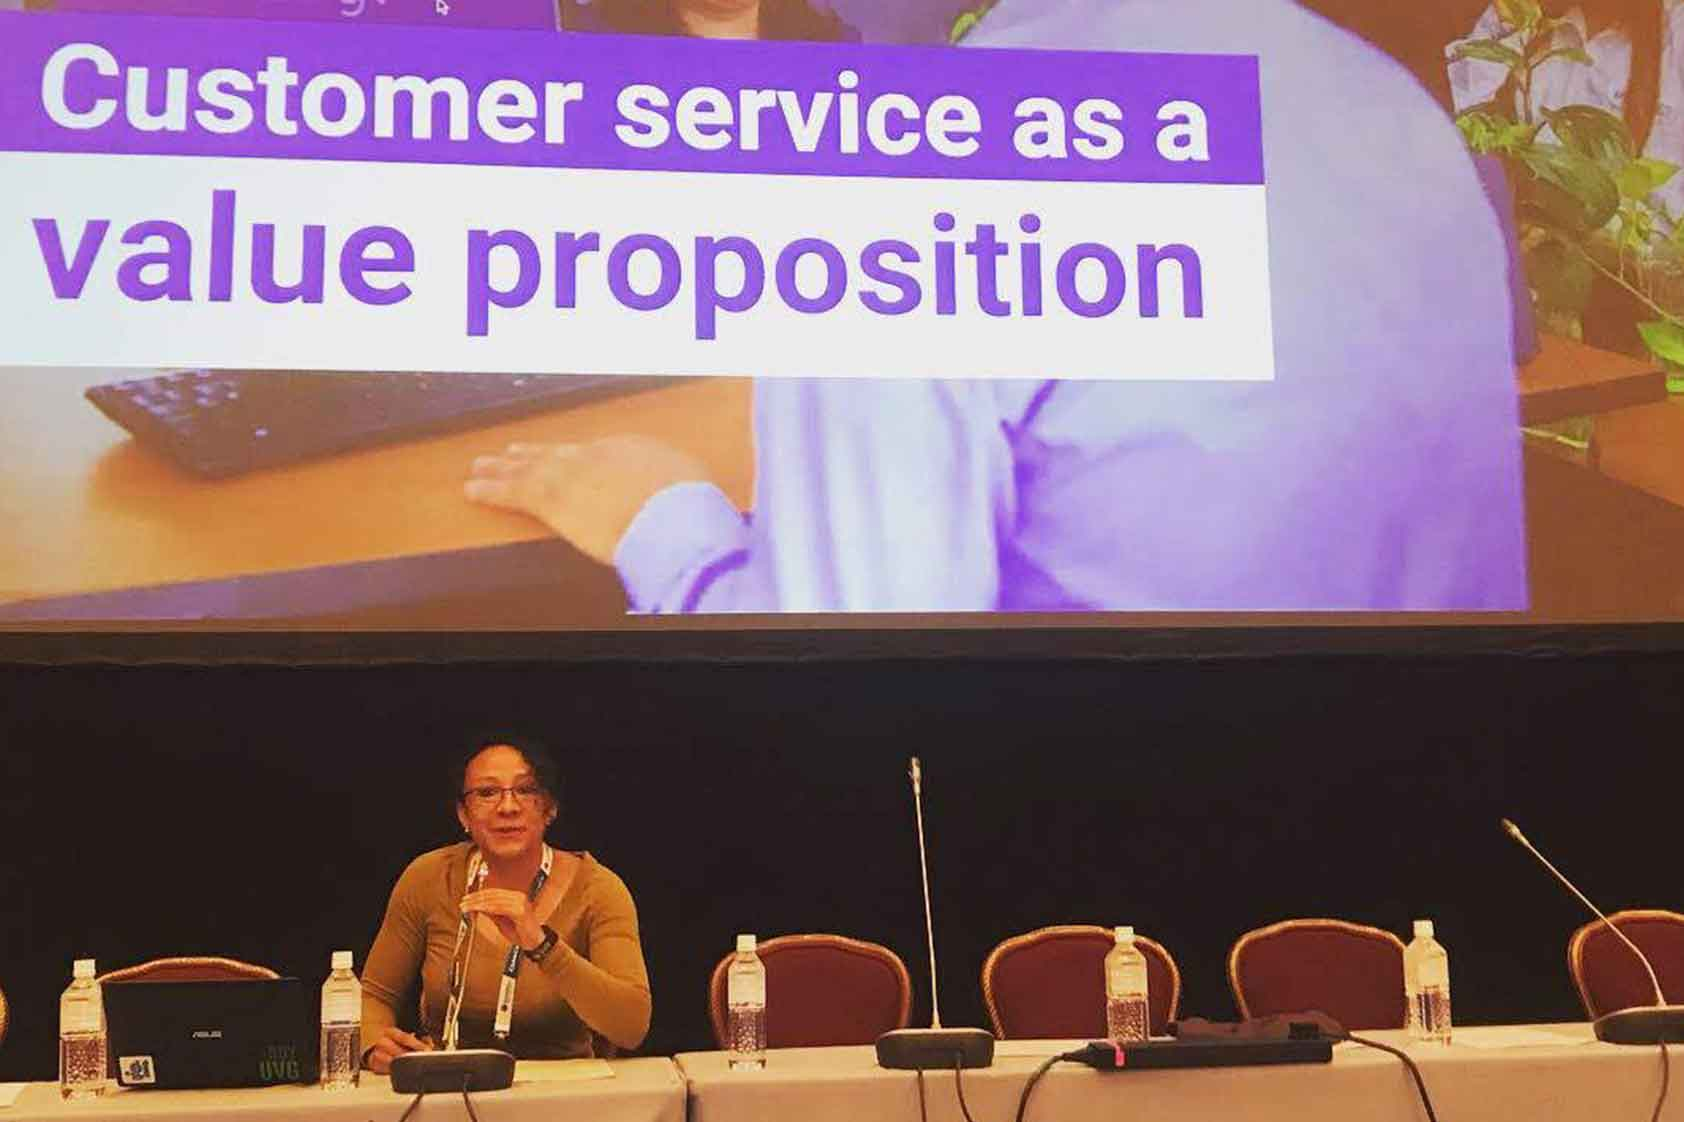 Customer service as a value proposition